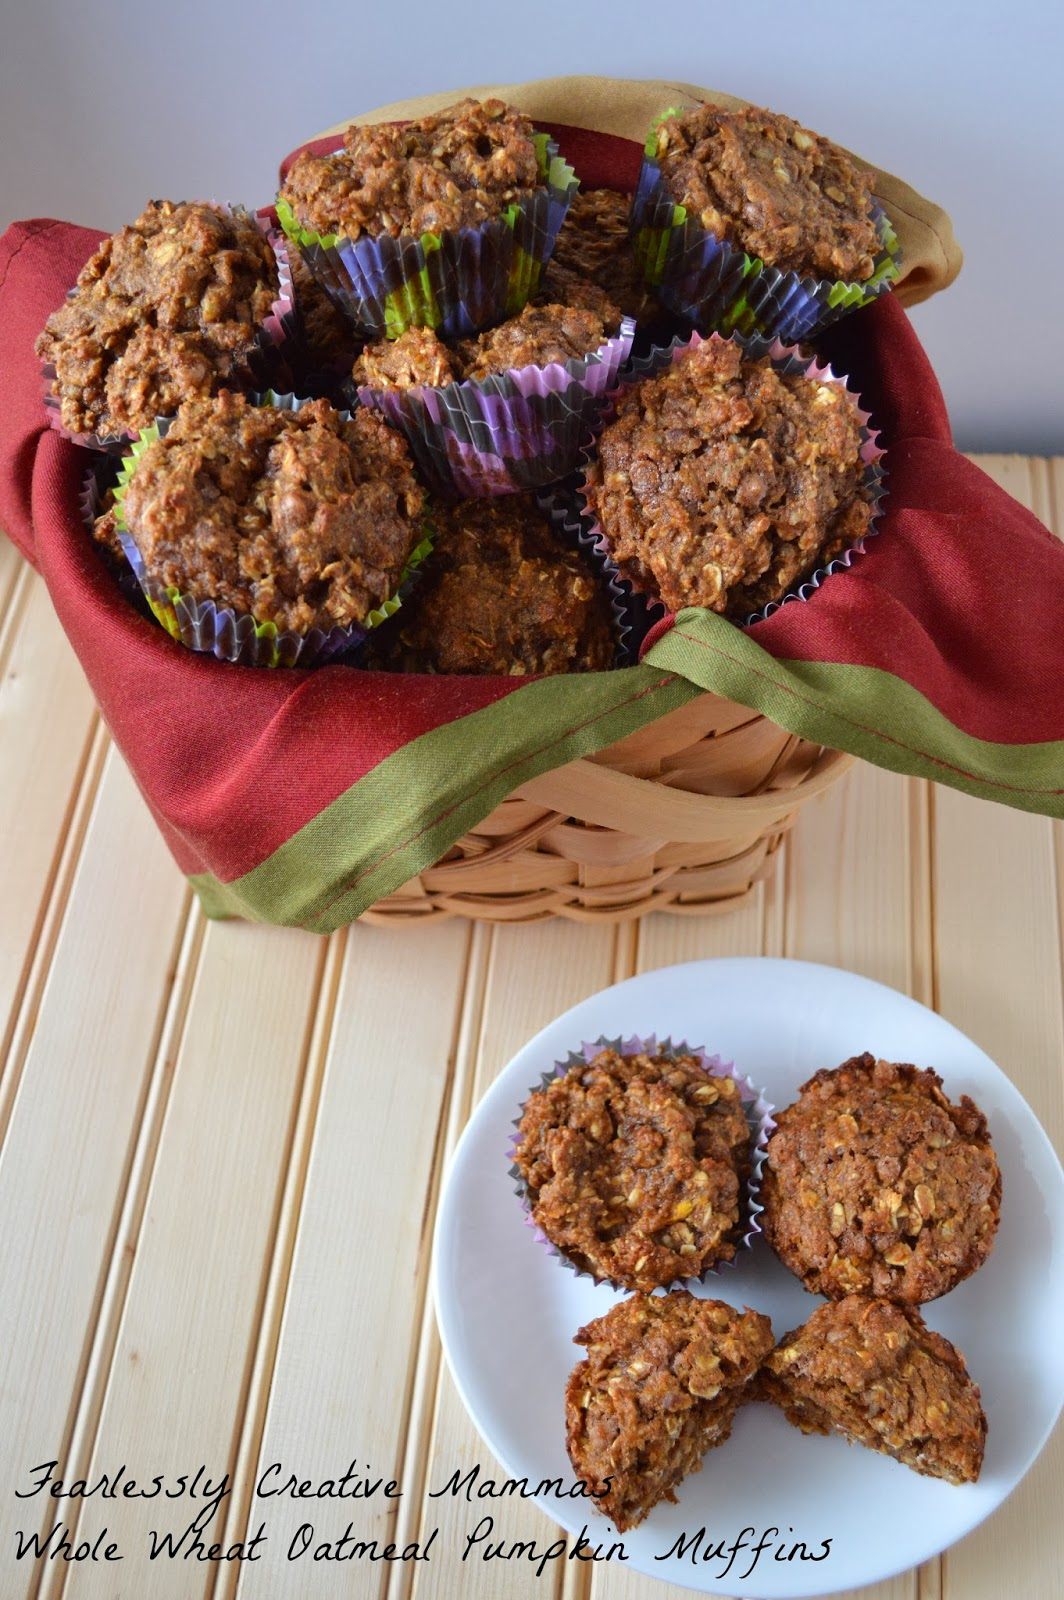 Whole Wheat Oatmeal Pumpkin Muffins - Fearlessly Creative Mammas